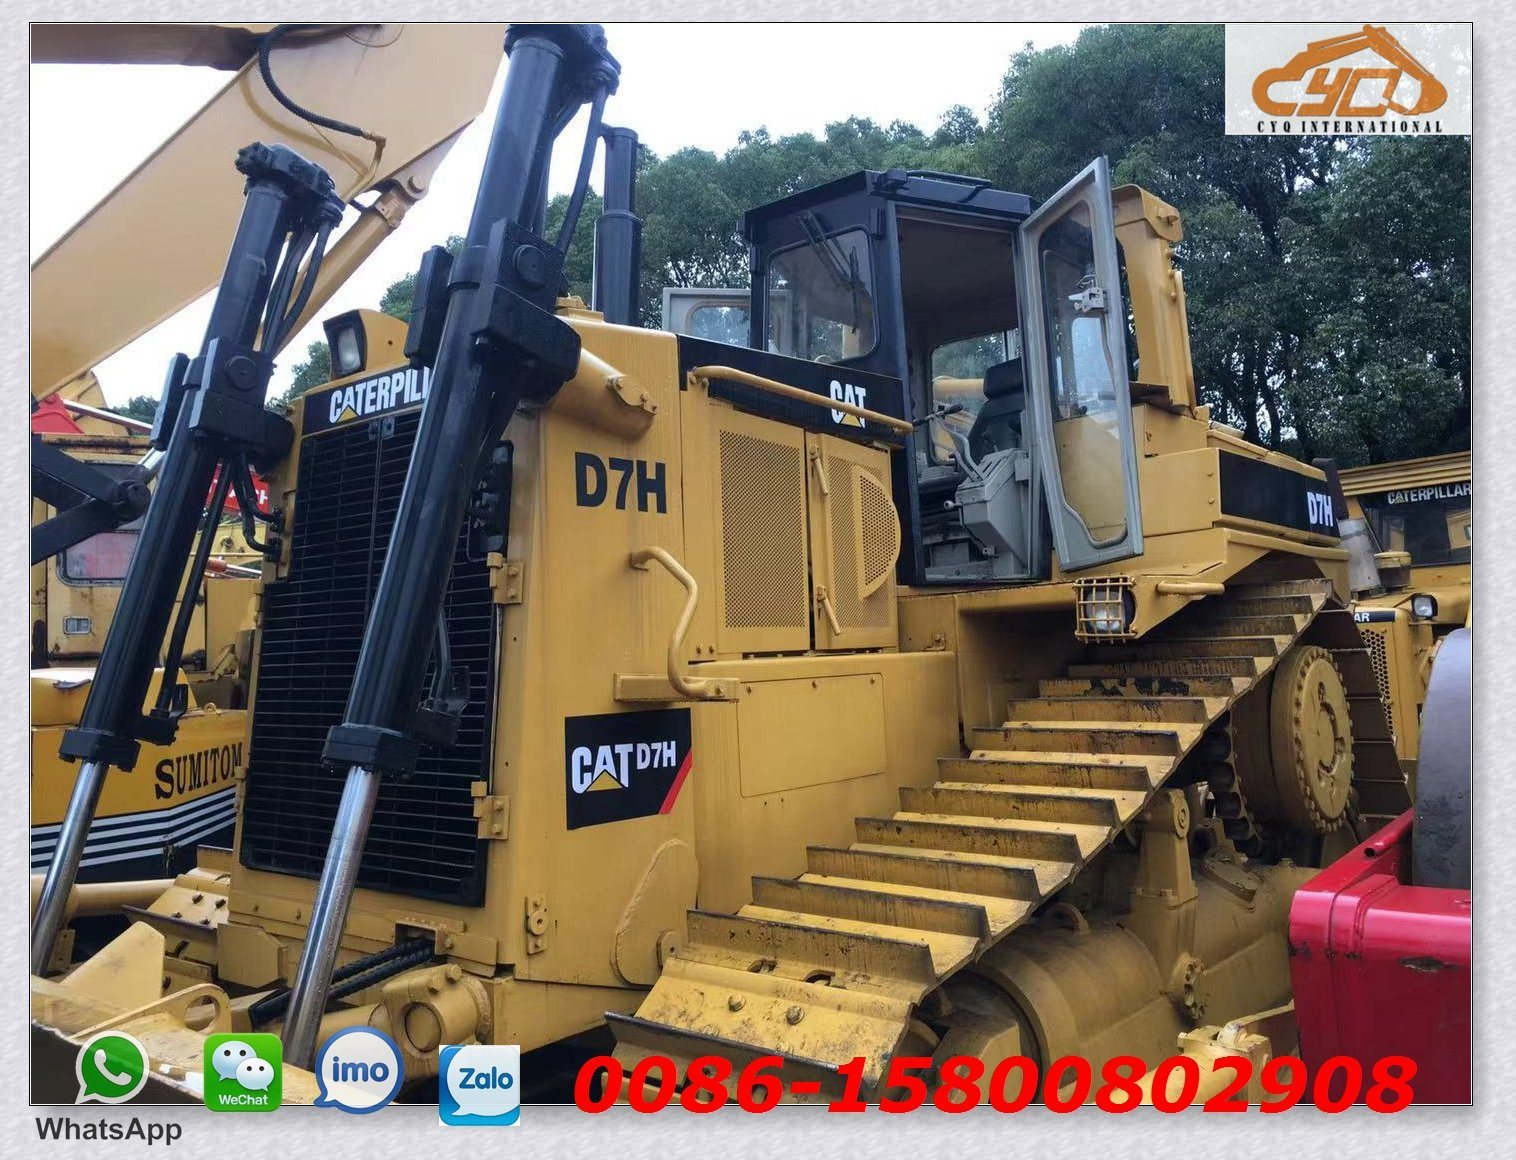 Bulldozers For Sale >> China Used Cat D7h Bulldozer Used Cat Bulldozers For Sale China